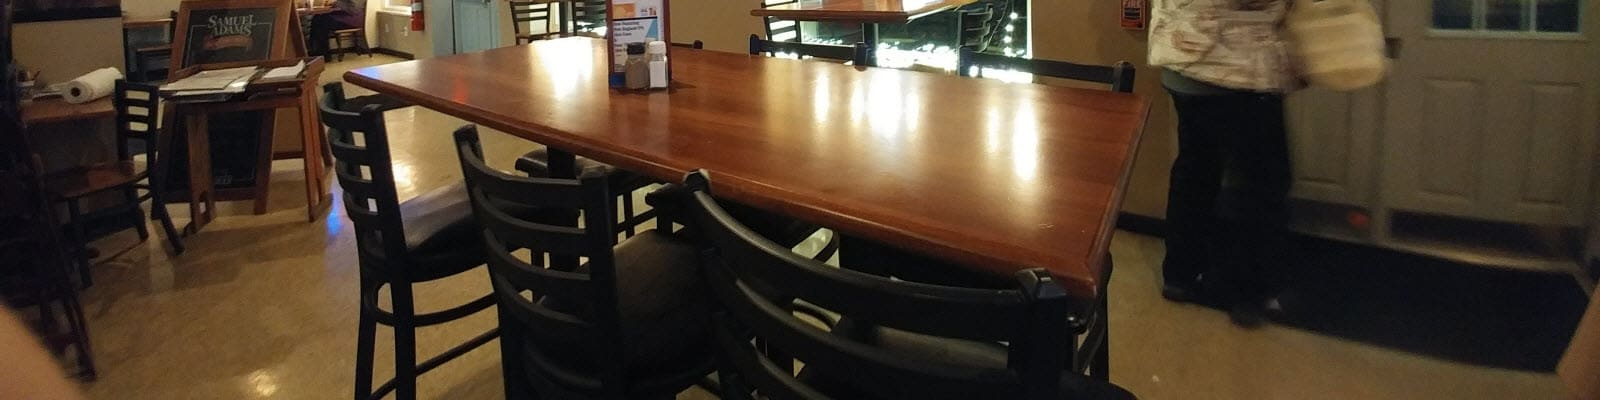 Metal restaurant bar stools and wood table top